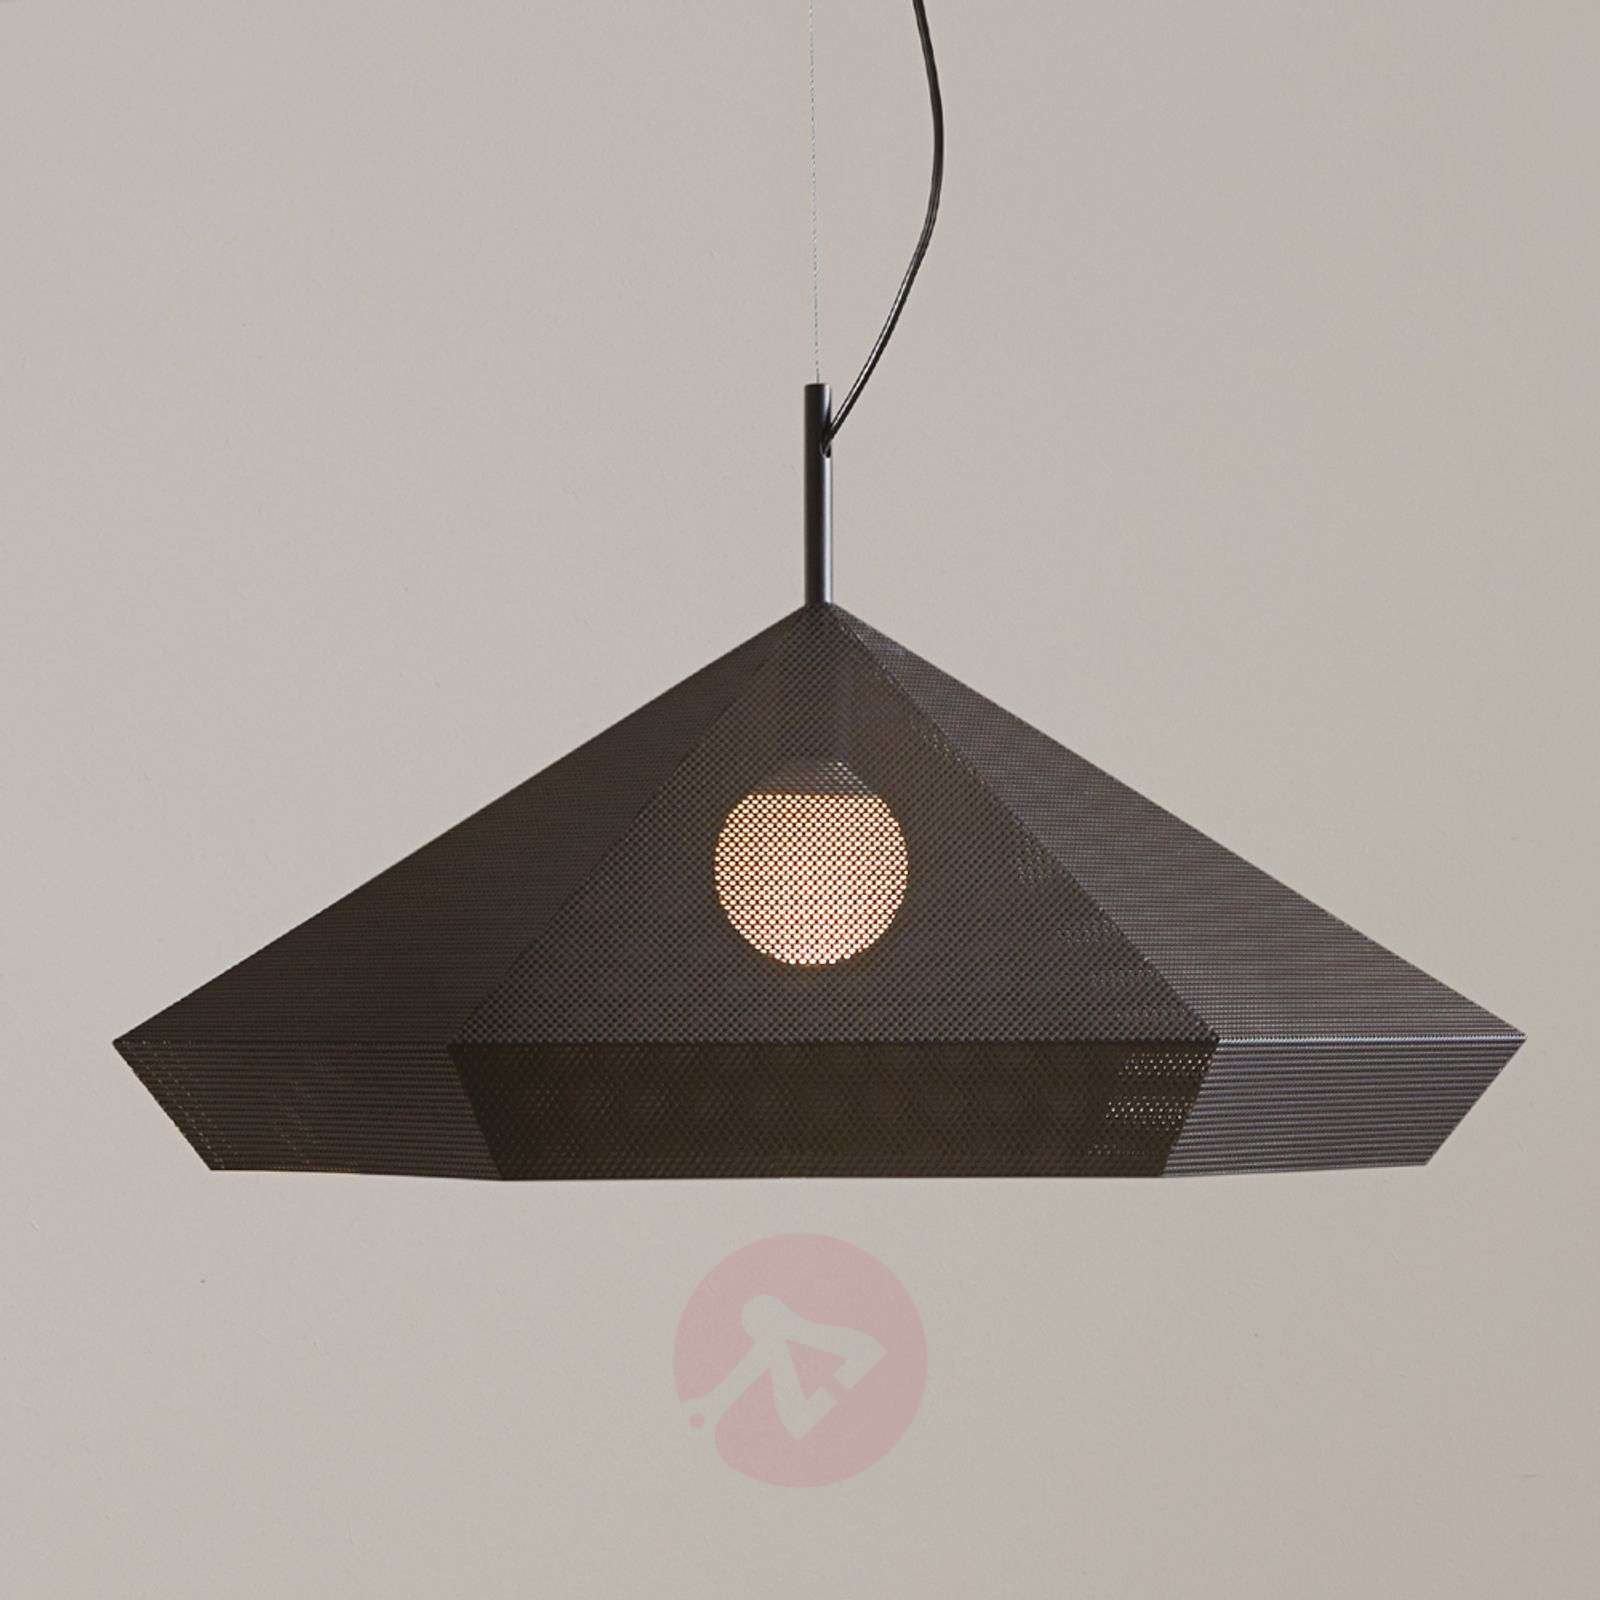 Designerska lampa wisząca Priamo, czarna, 77 cm